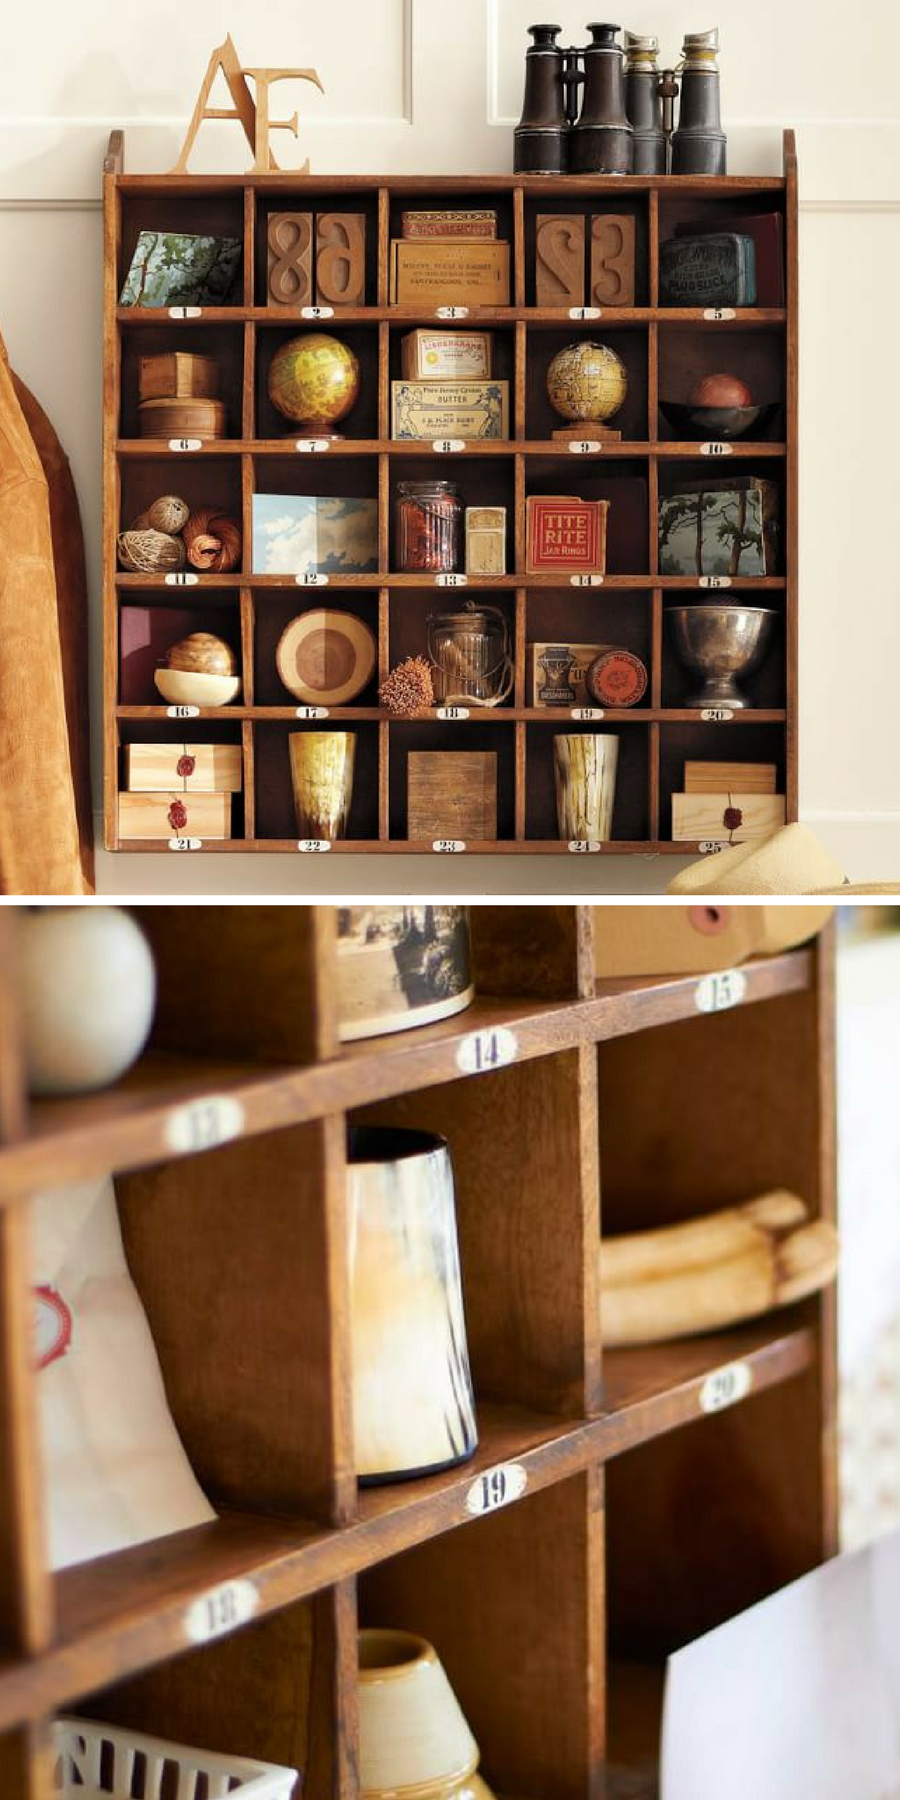 Cubby Organizer. The front-desk organizers used in hotels inspired